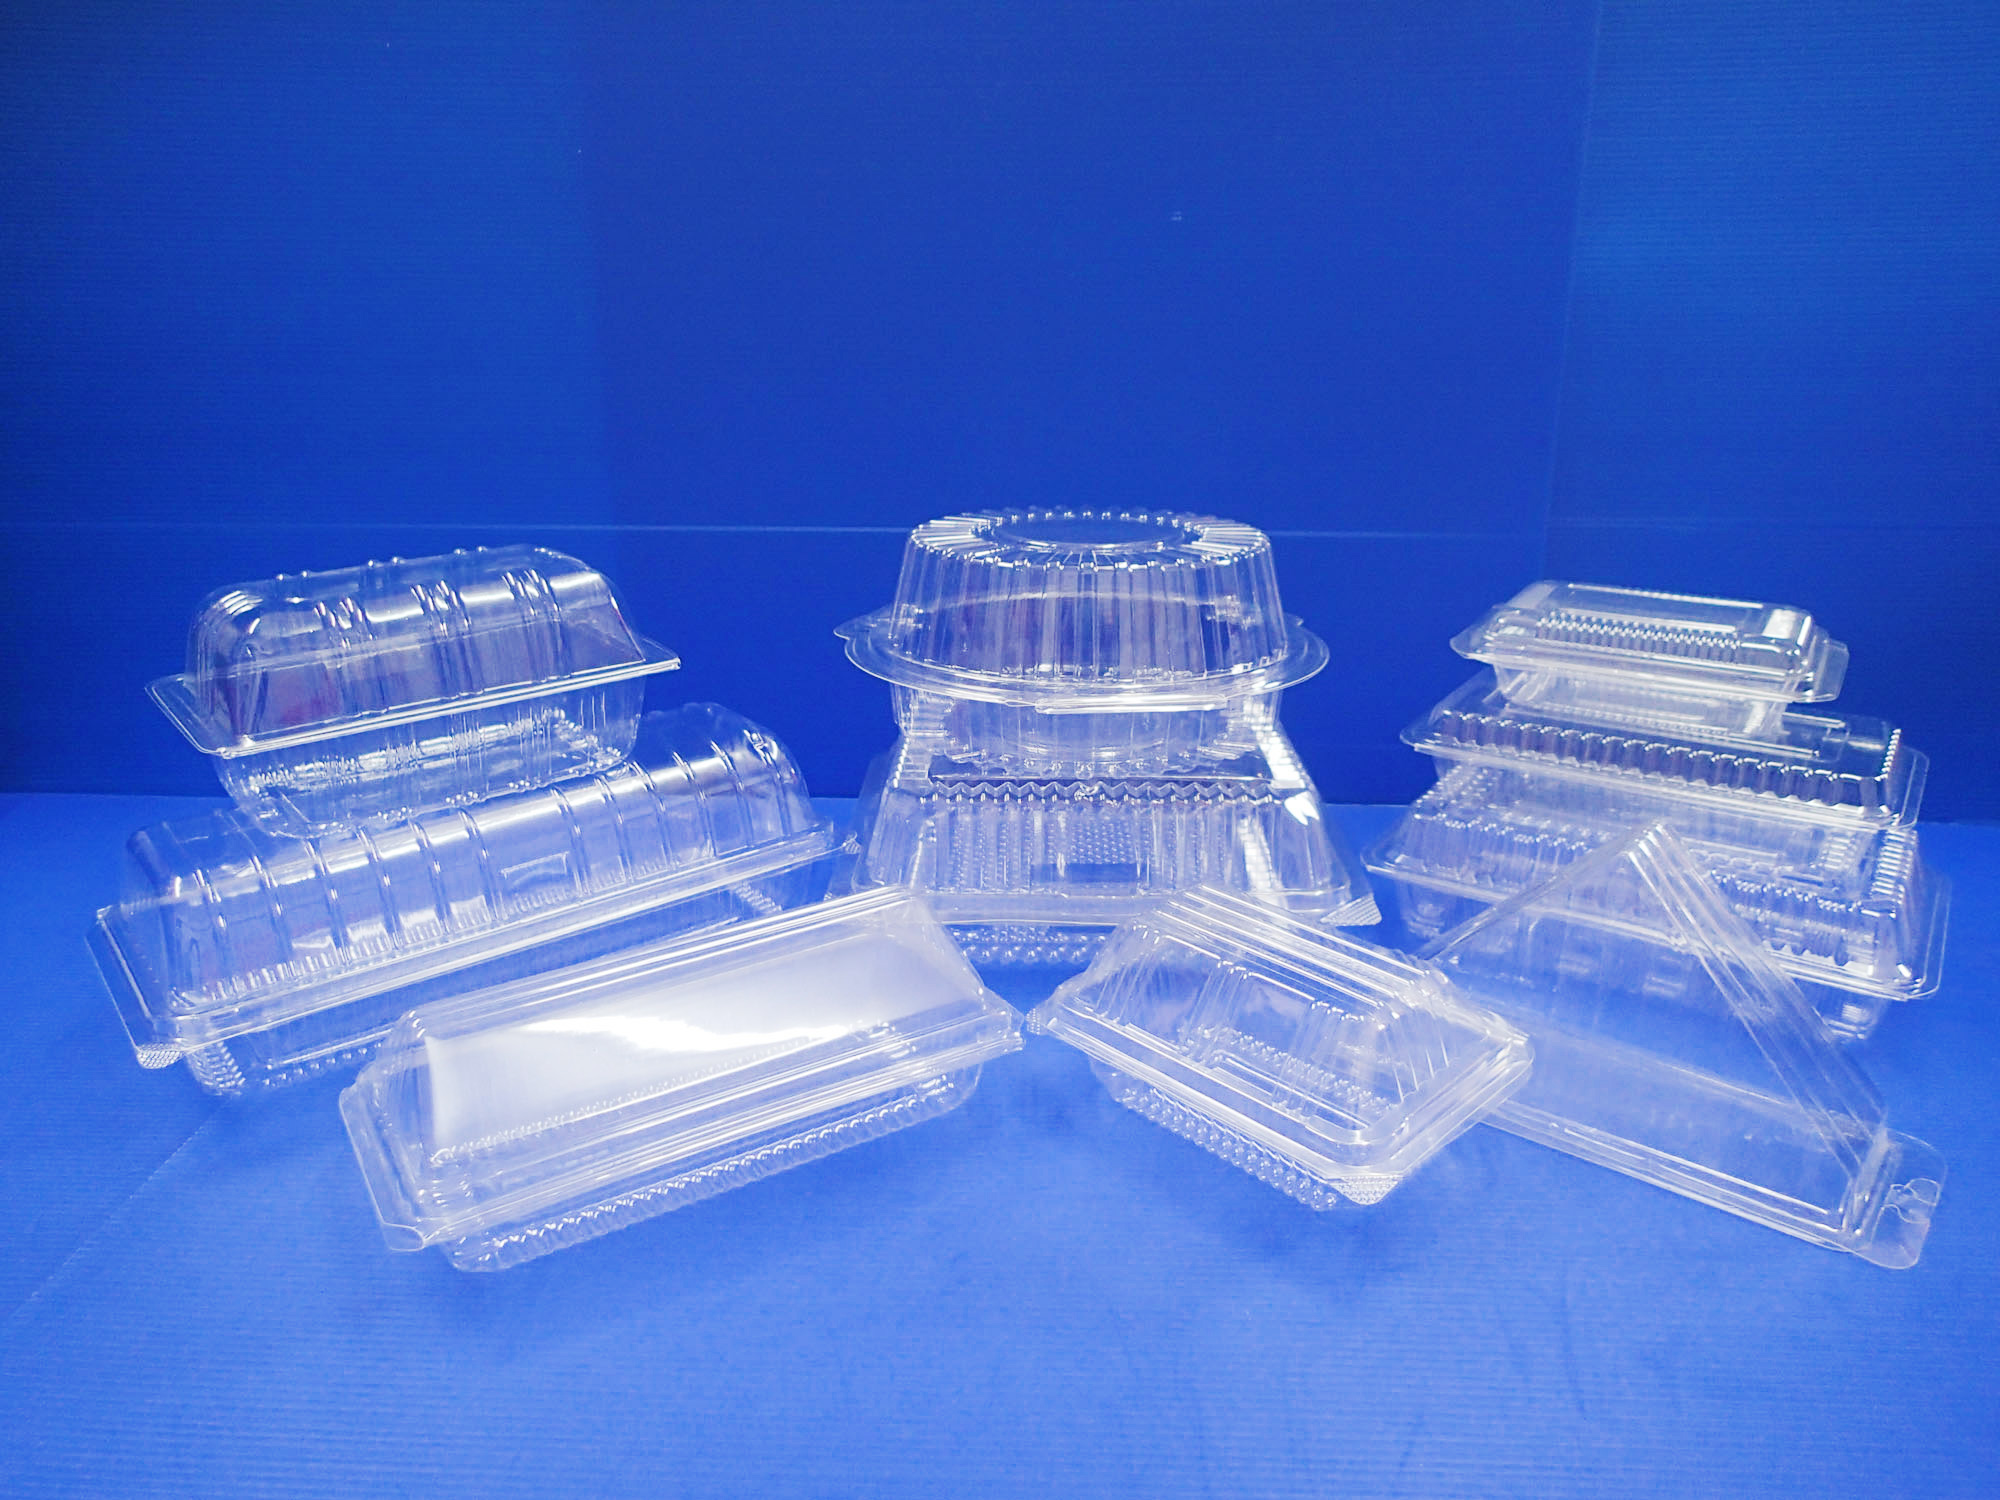 53607ddcebc442547500038c_B2-OPS-Clear-Trays-with-Lid-1.jpg